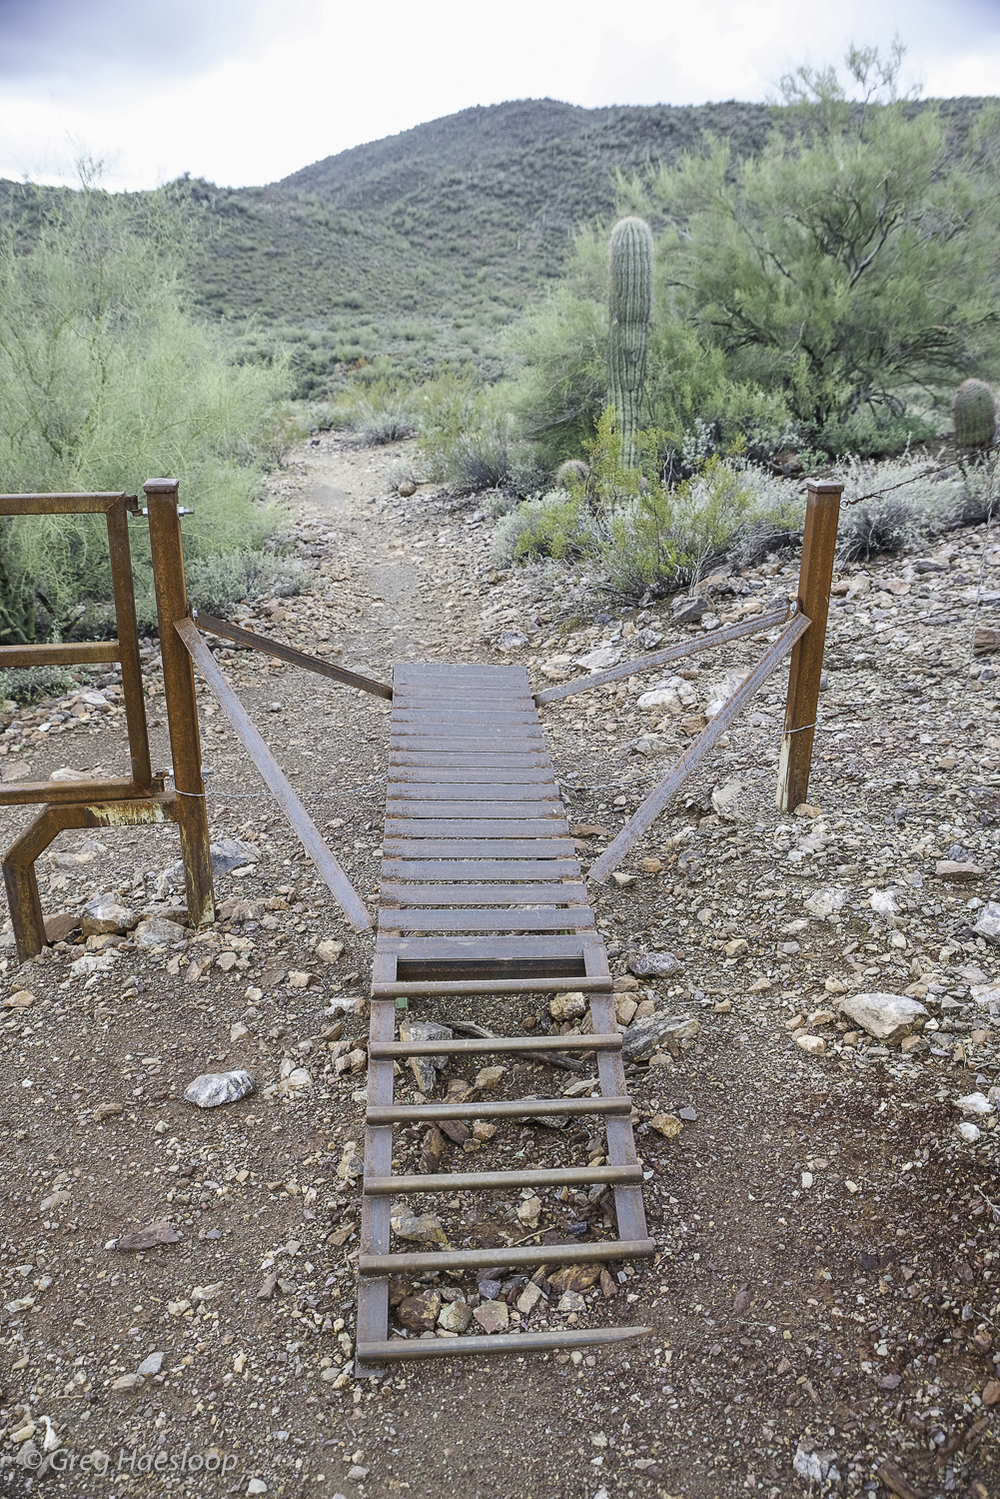 Mountain bikers can get through this gate!!